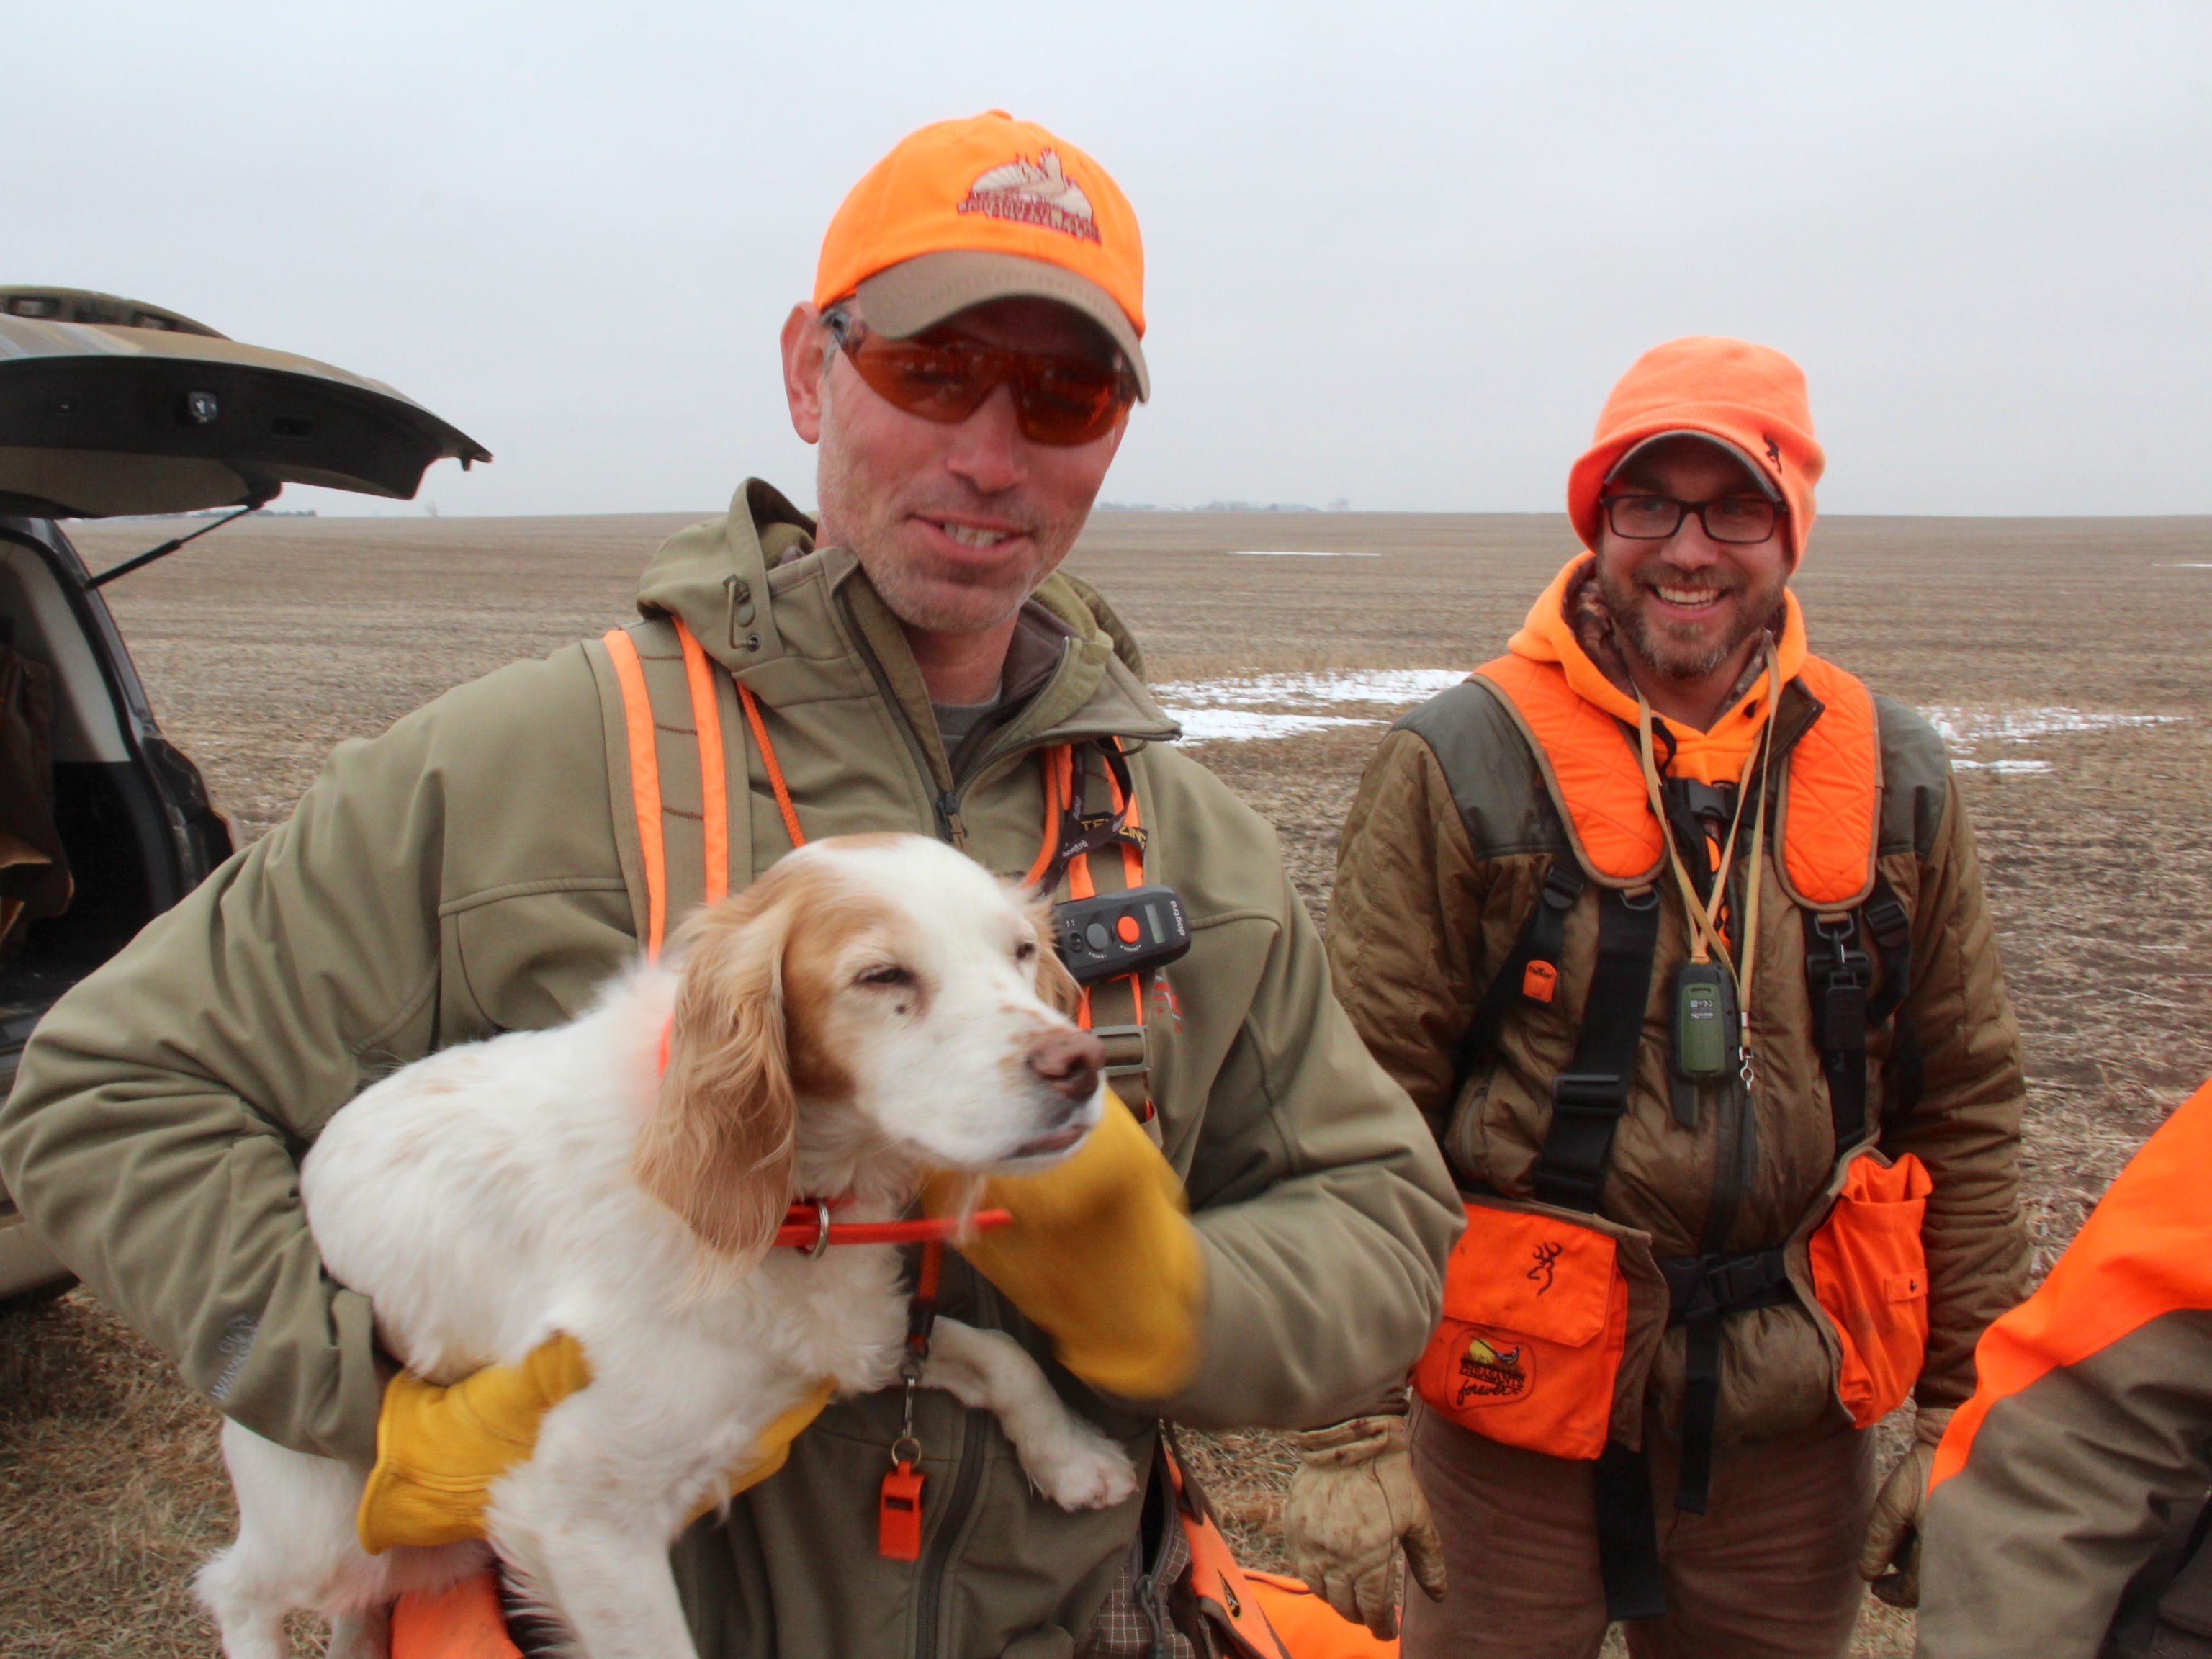 Eric Johannsen of Aberdeen, South Dakota holds an English cocker spaniel owned by Anthony Hauck, right, of Prior Lake, Minnesota, prior to a pheasant hunt on the farm owned by Johannsen's family.